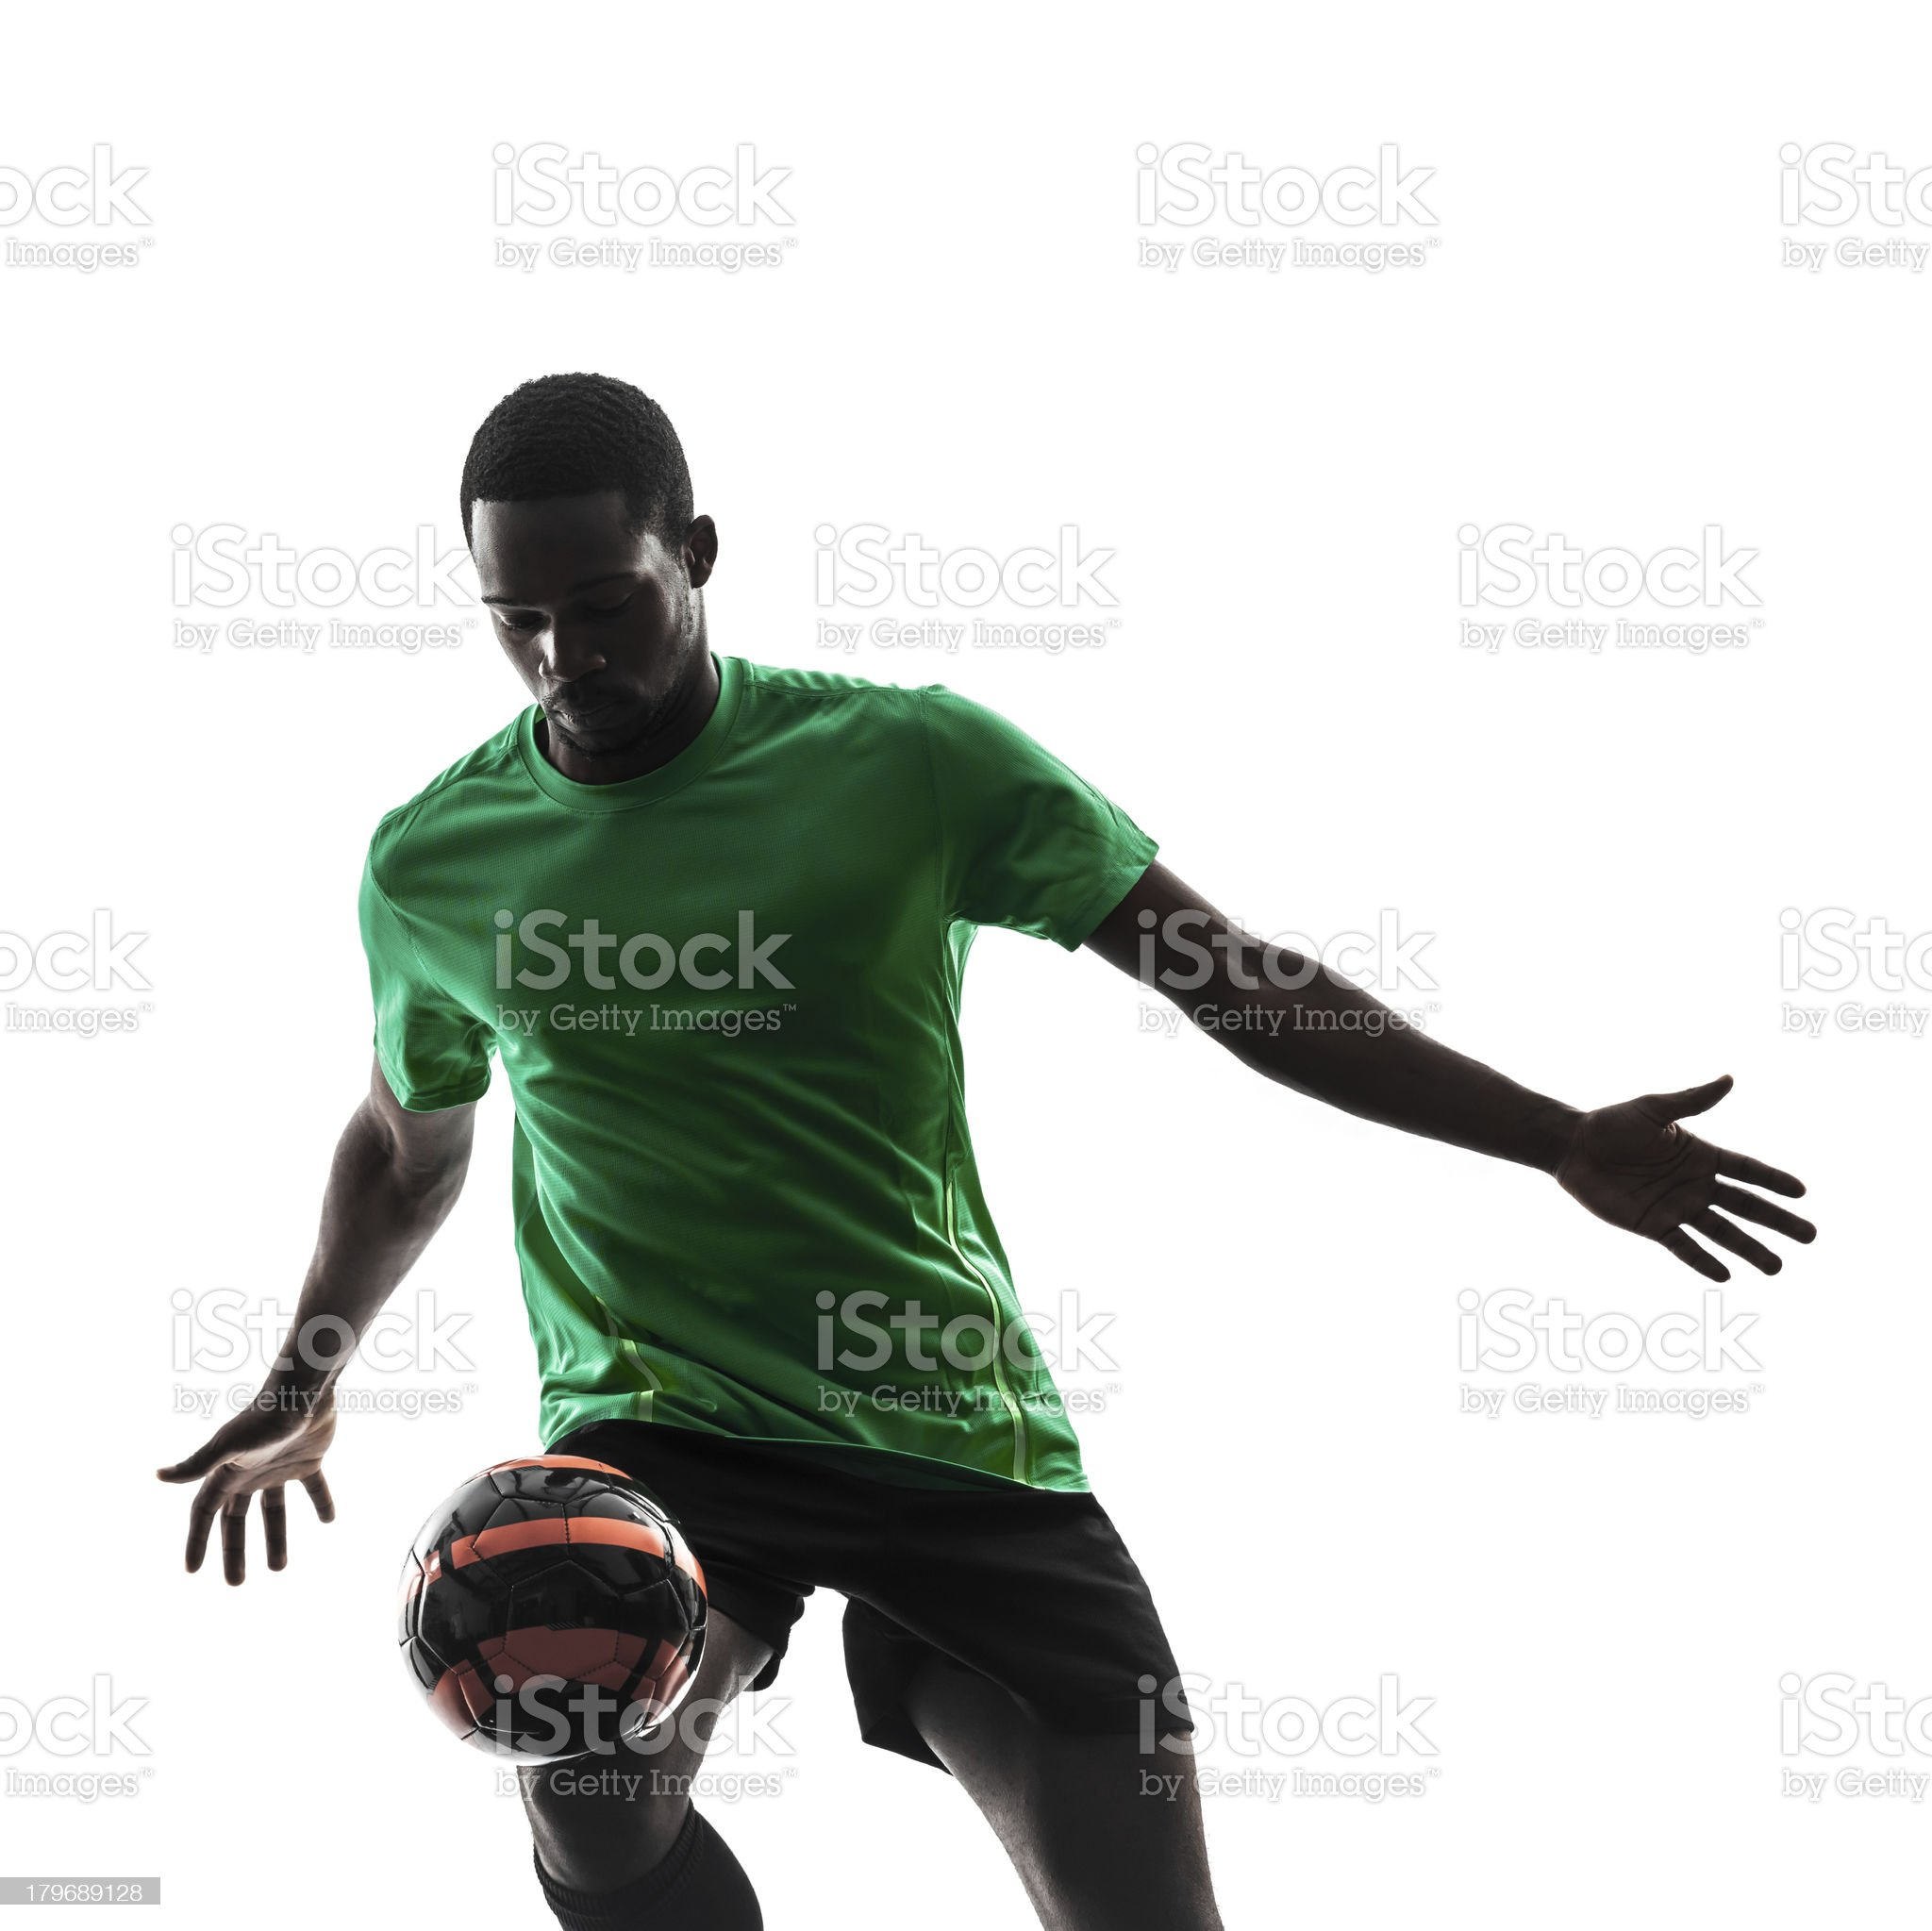 Silhouette of African man juggling soccer ball royalty-free stock photo